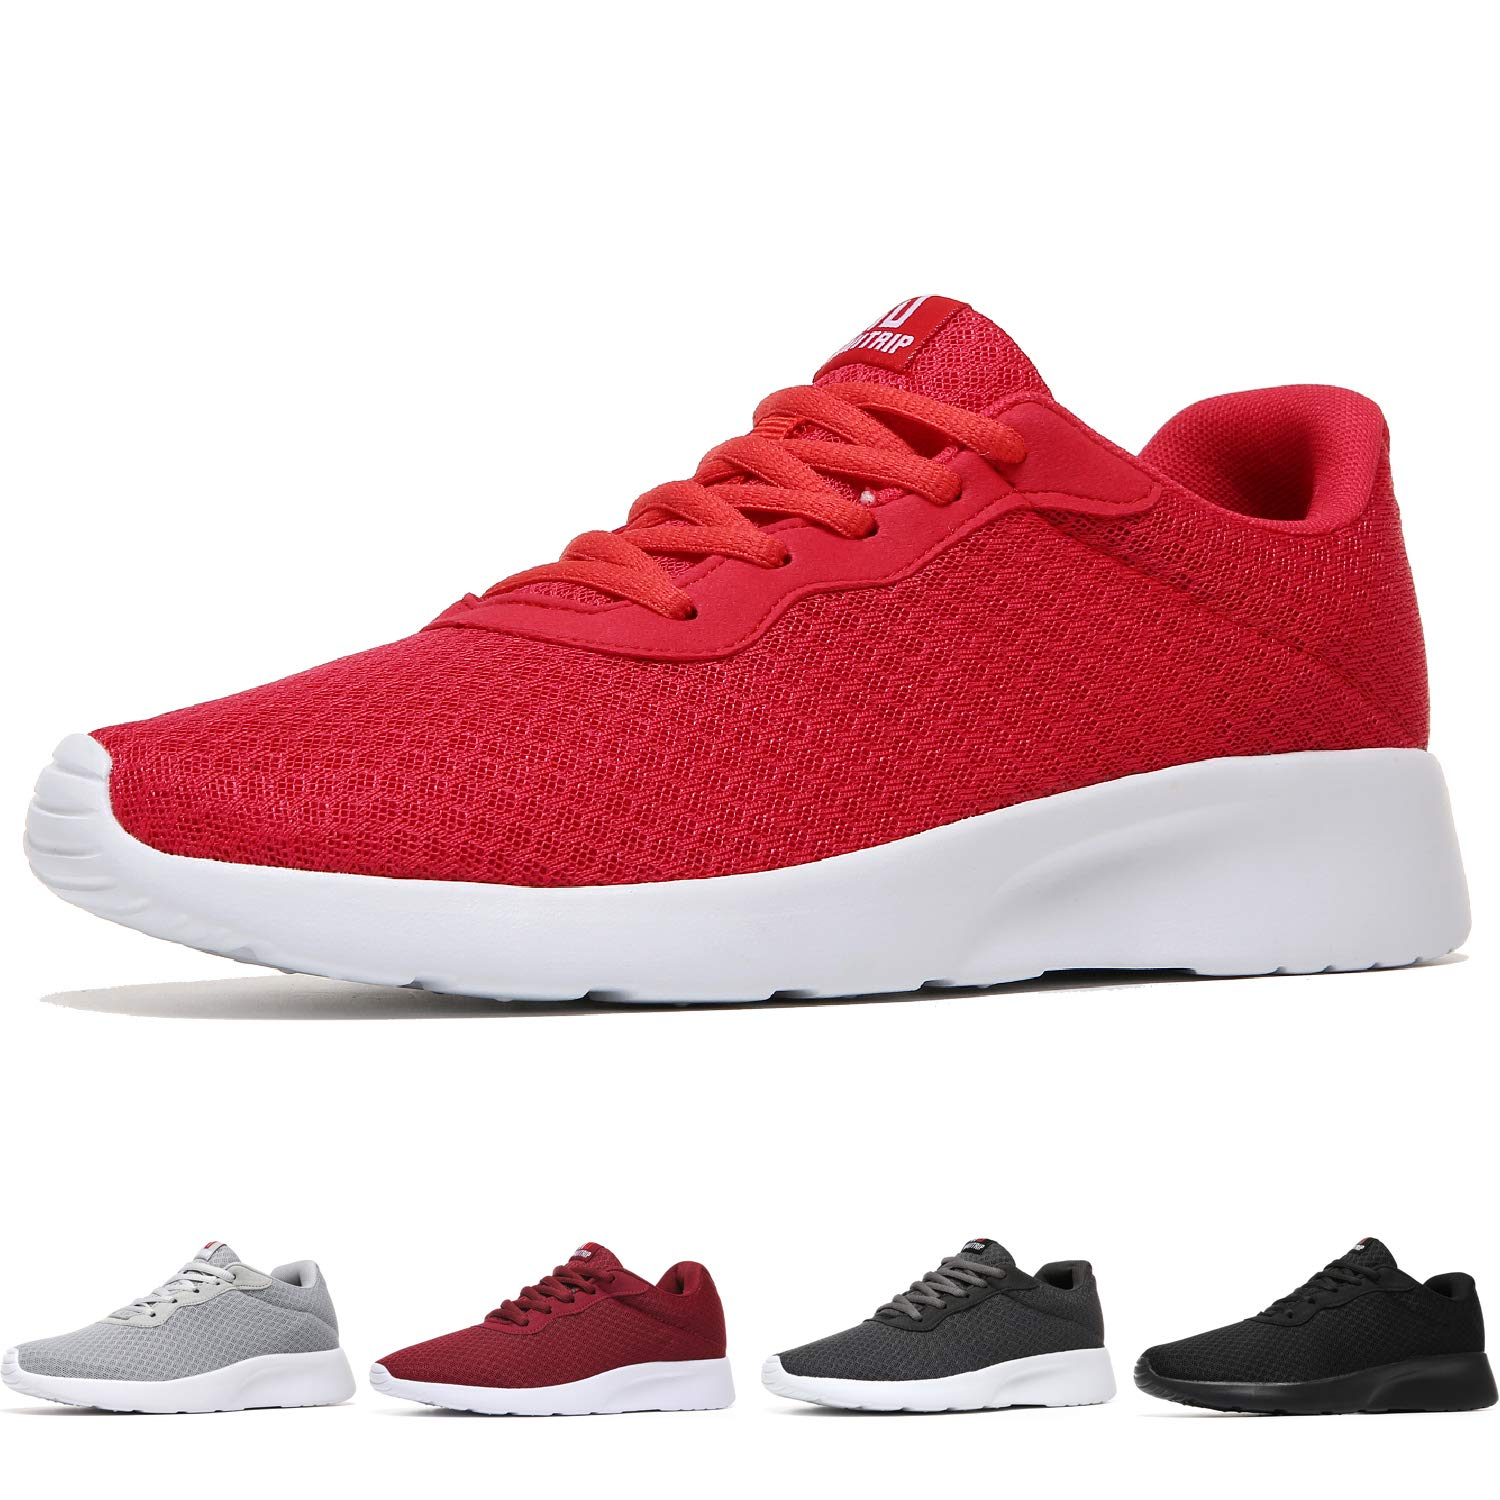 MAIITRIP Men's Running Shoes Sport Athletic Sneakers,Red/White,Size 7